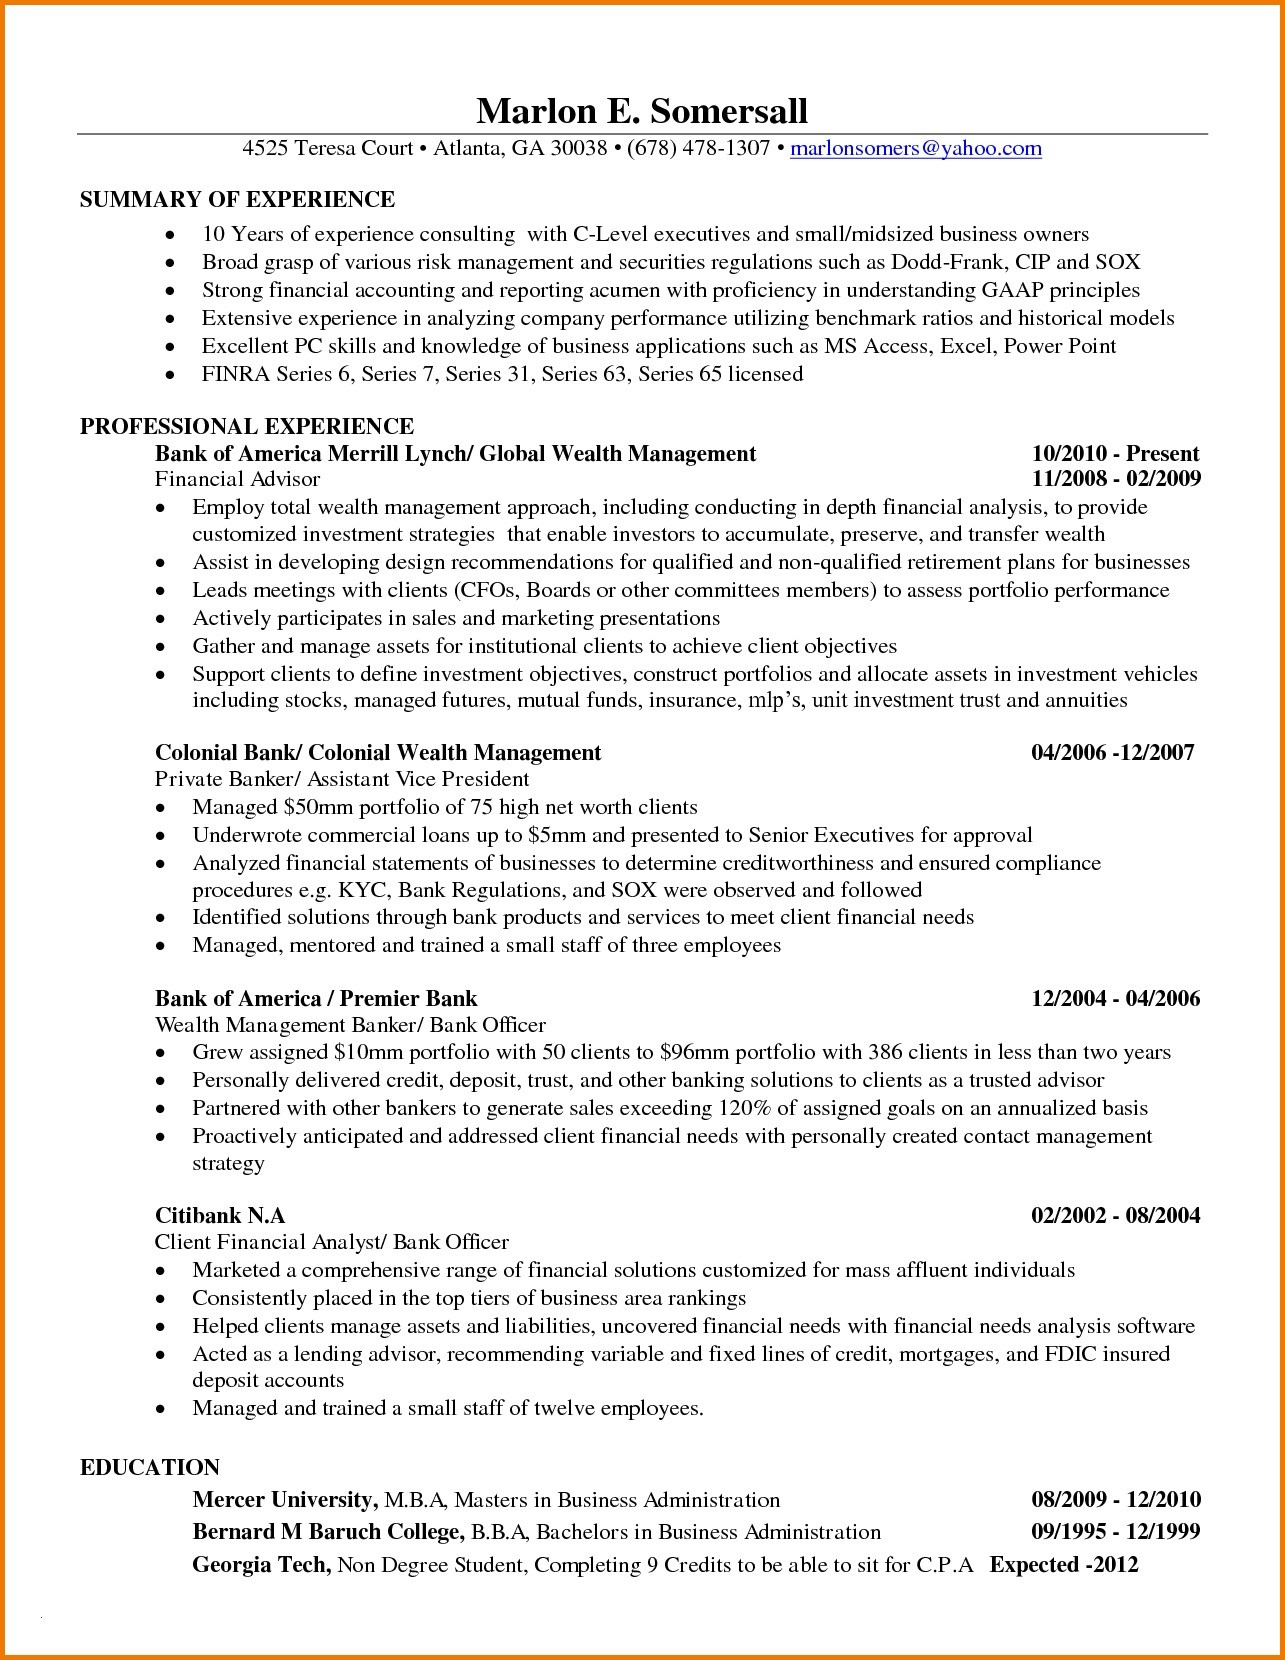 Gatech Resume Template - Financial Analyst Resume Sample Fresh Business Analyst Resume